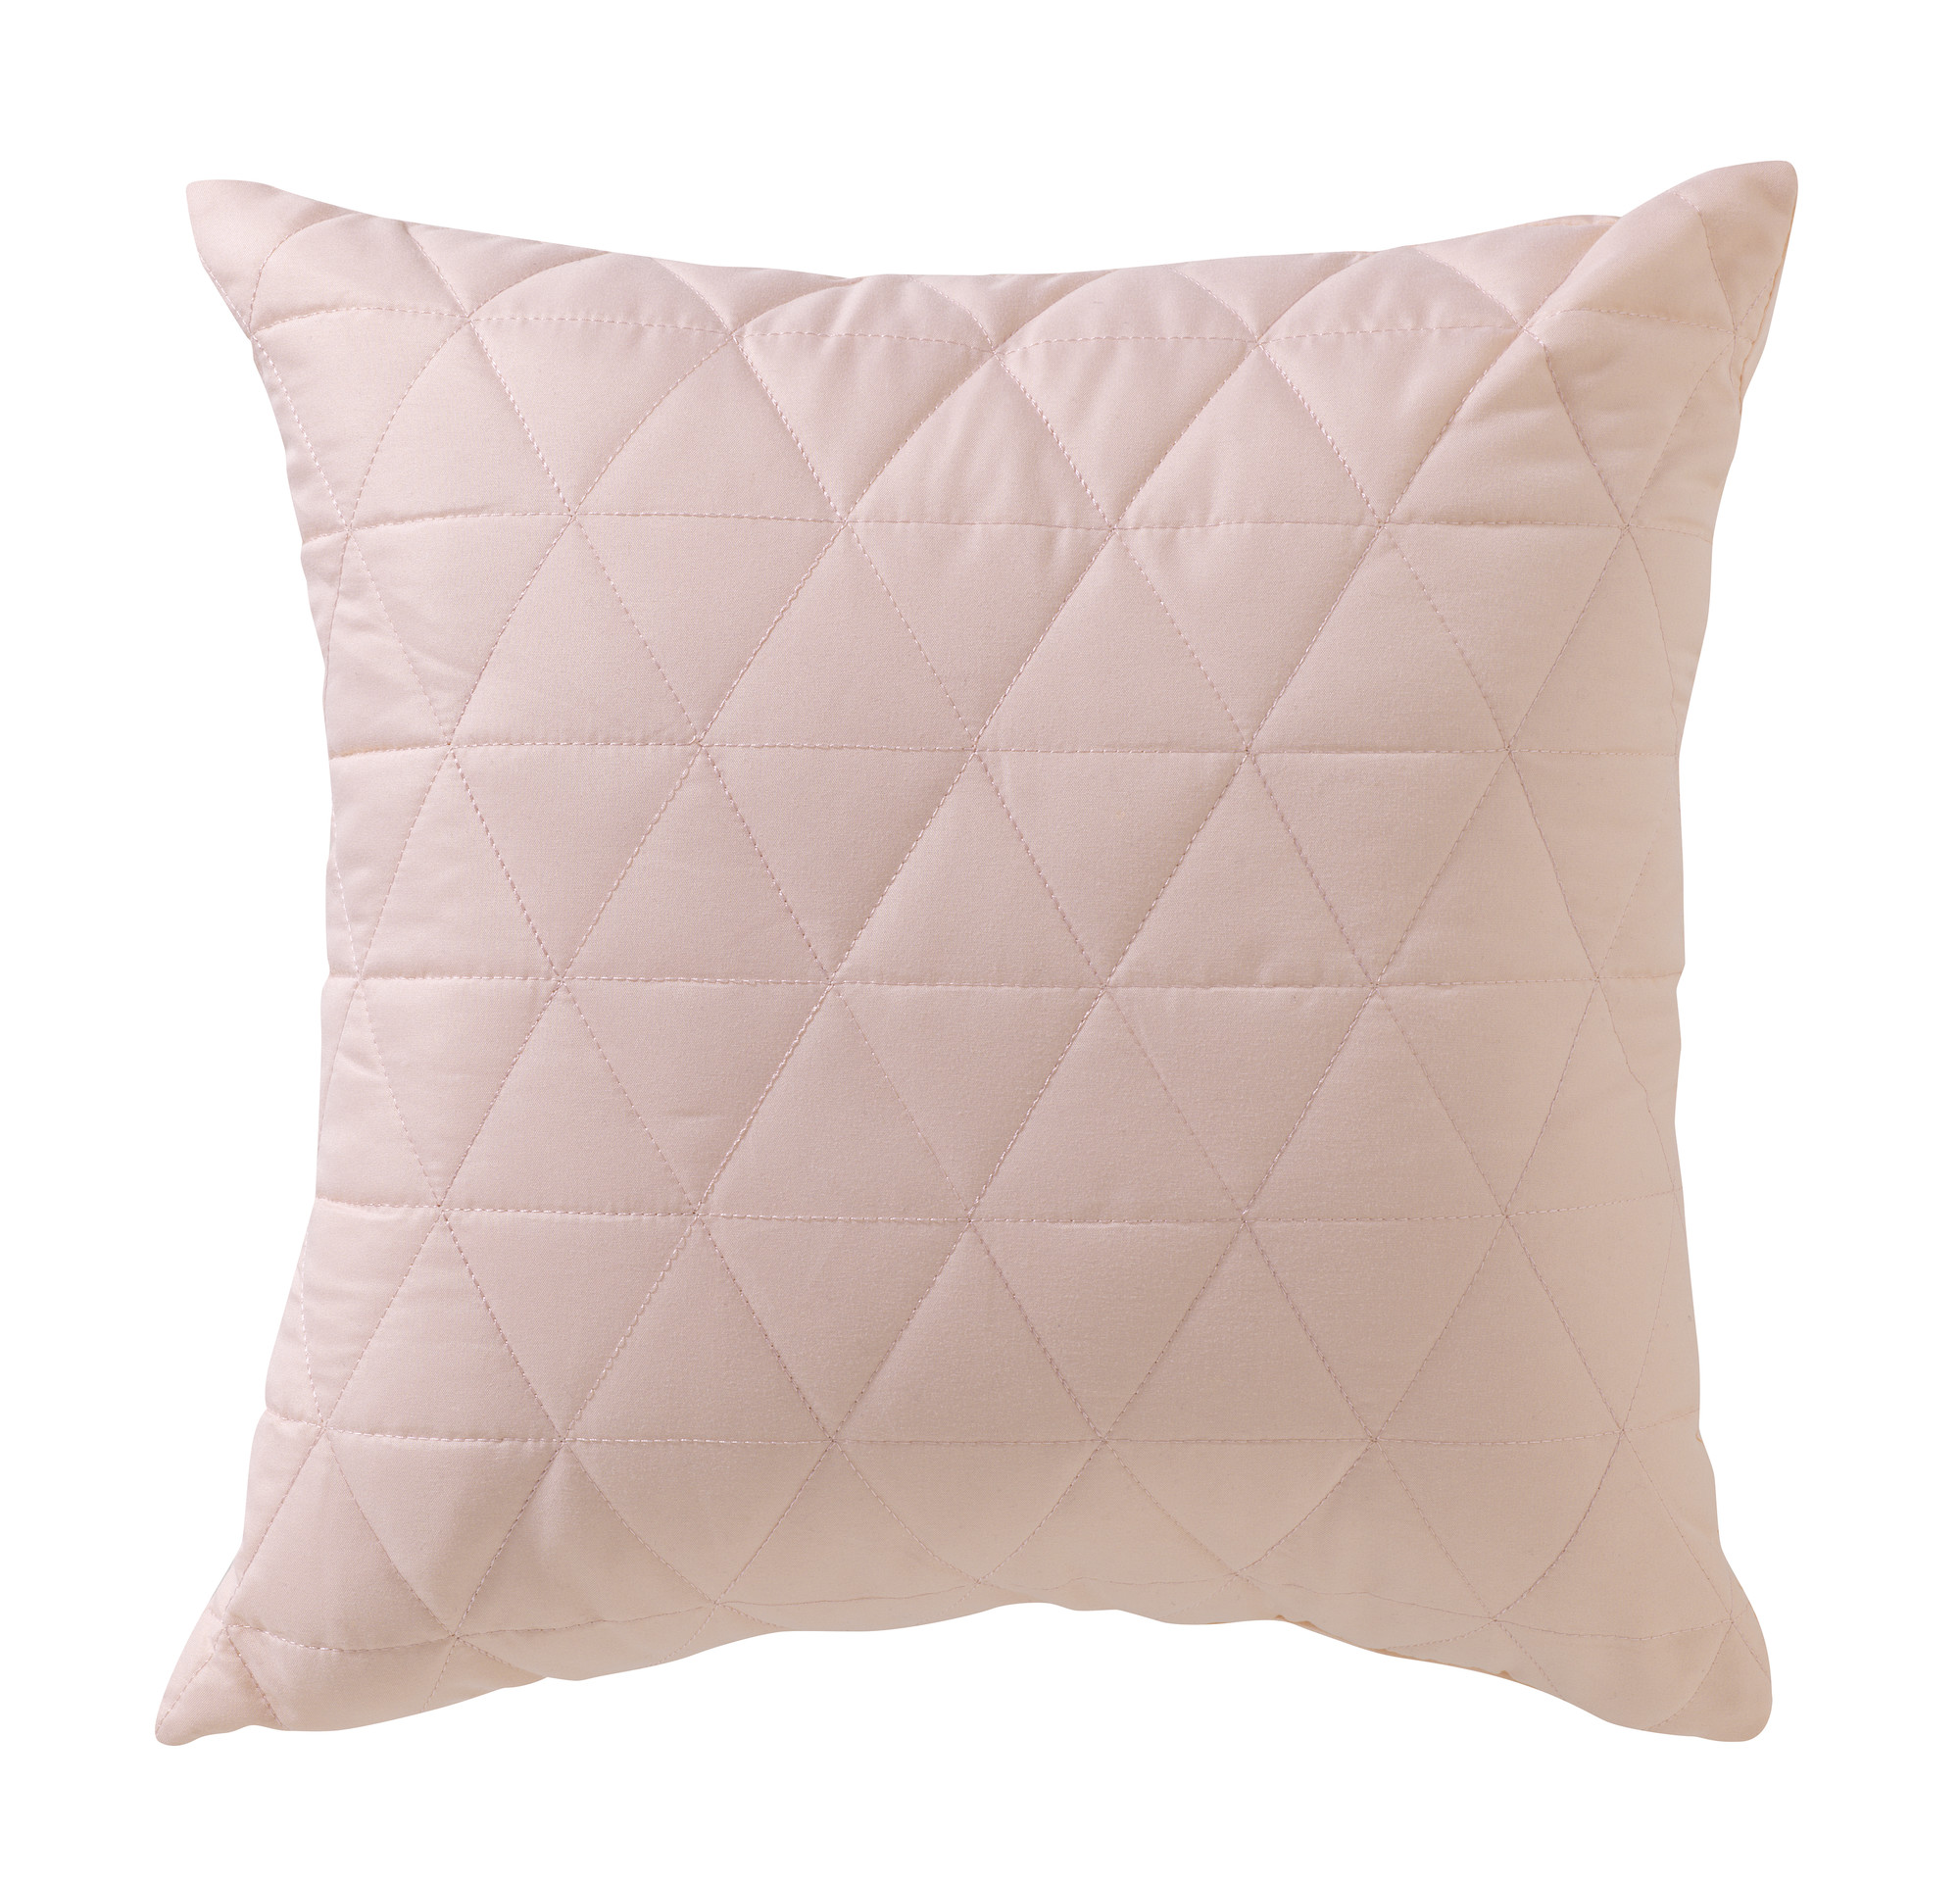 numbers pillow pale the cushion sqvcp under sometimes coordinate following vivid listed also coordinates sku temple throw manufacturer pillows pink square webster is